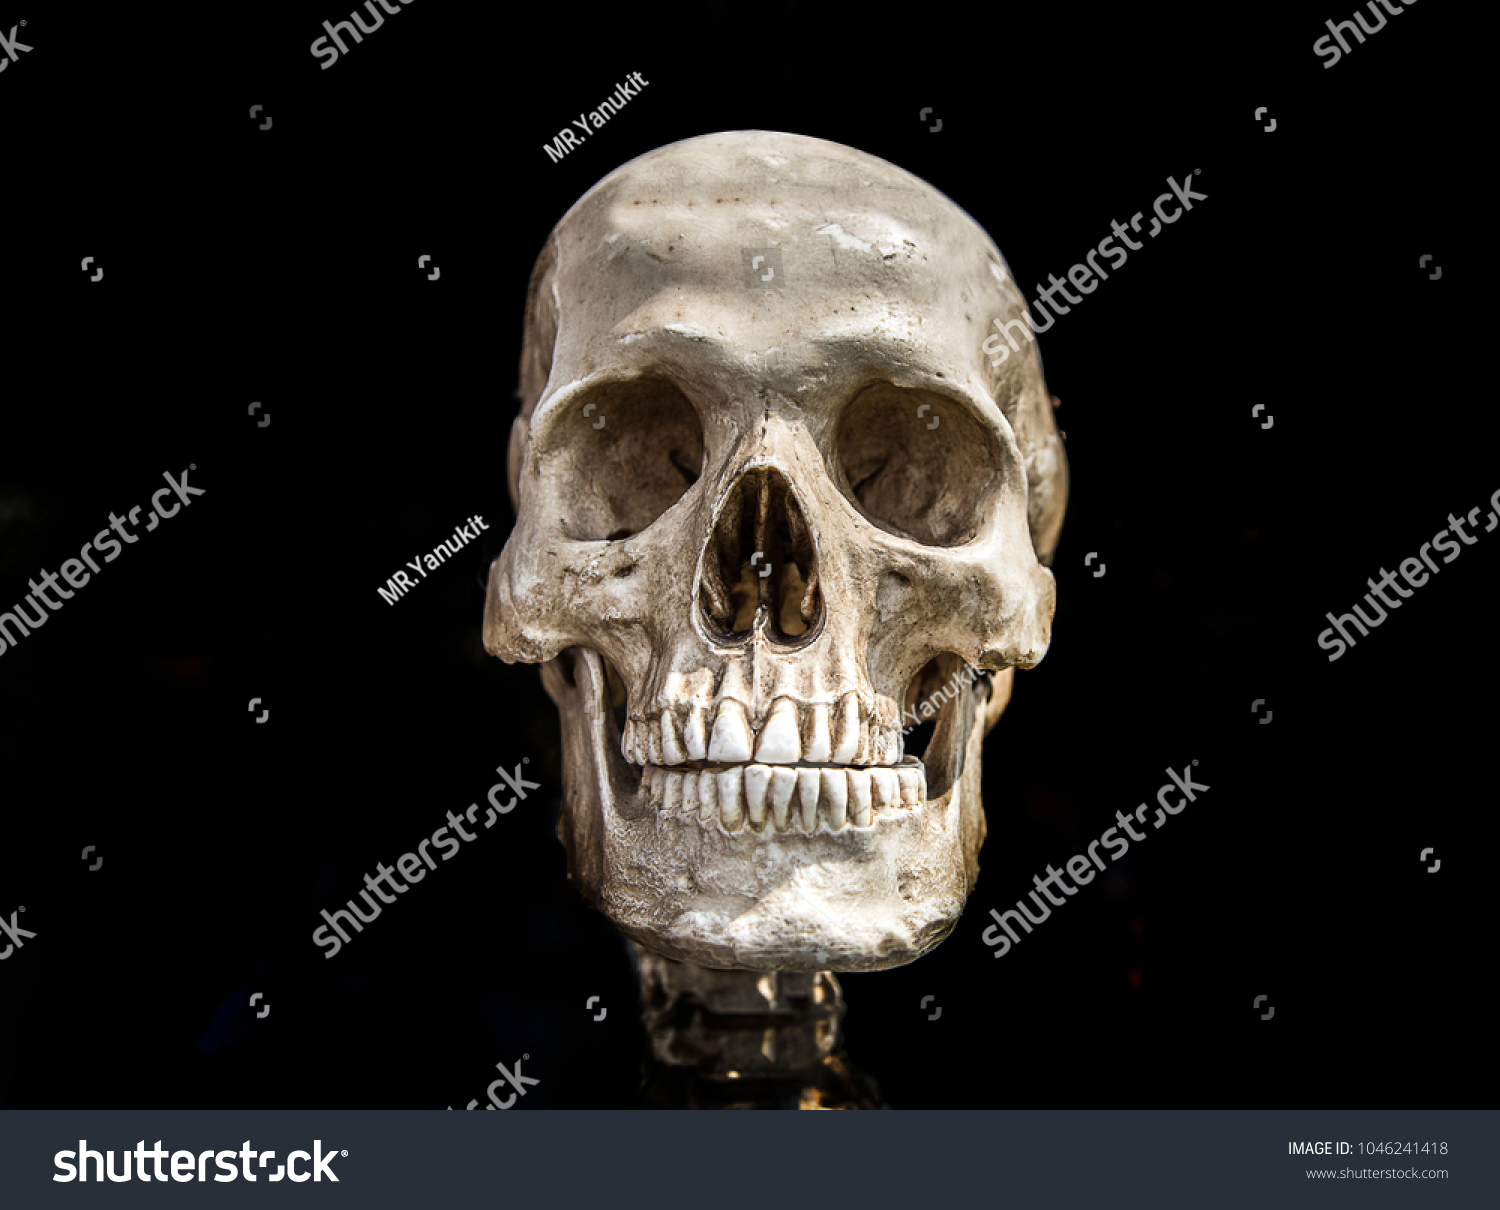 Human Scull On Black Isolate Show Stock Photo Edit Now 1046241418